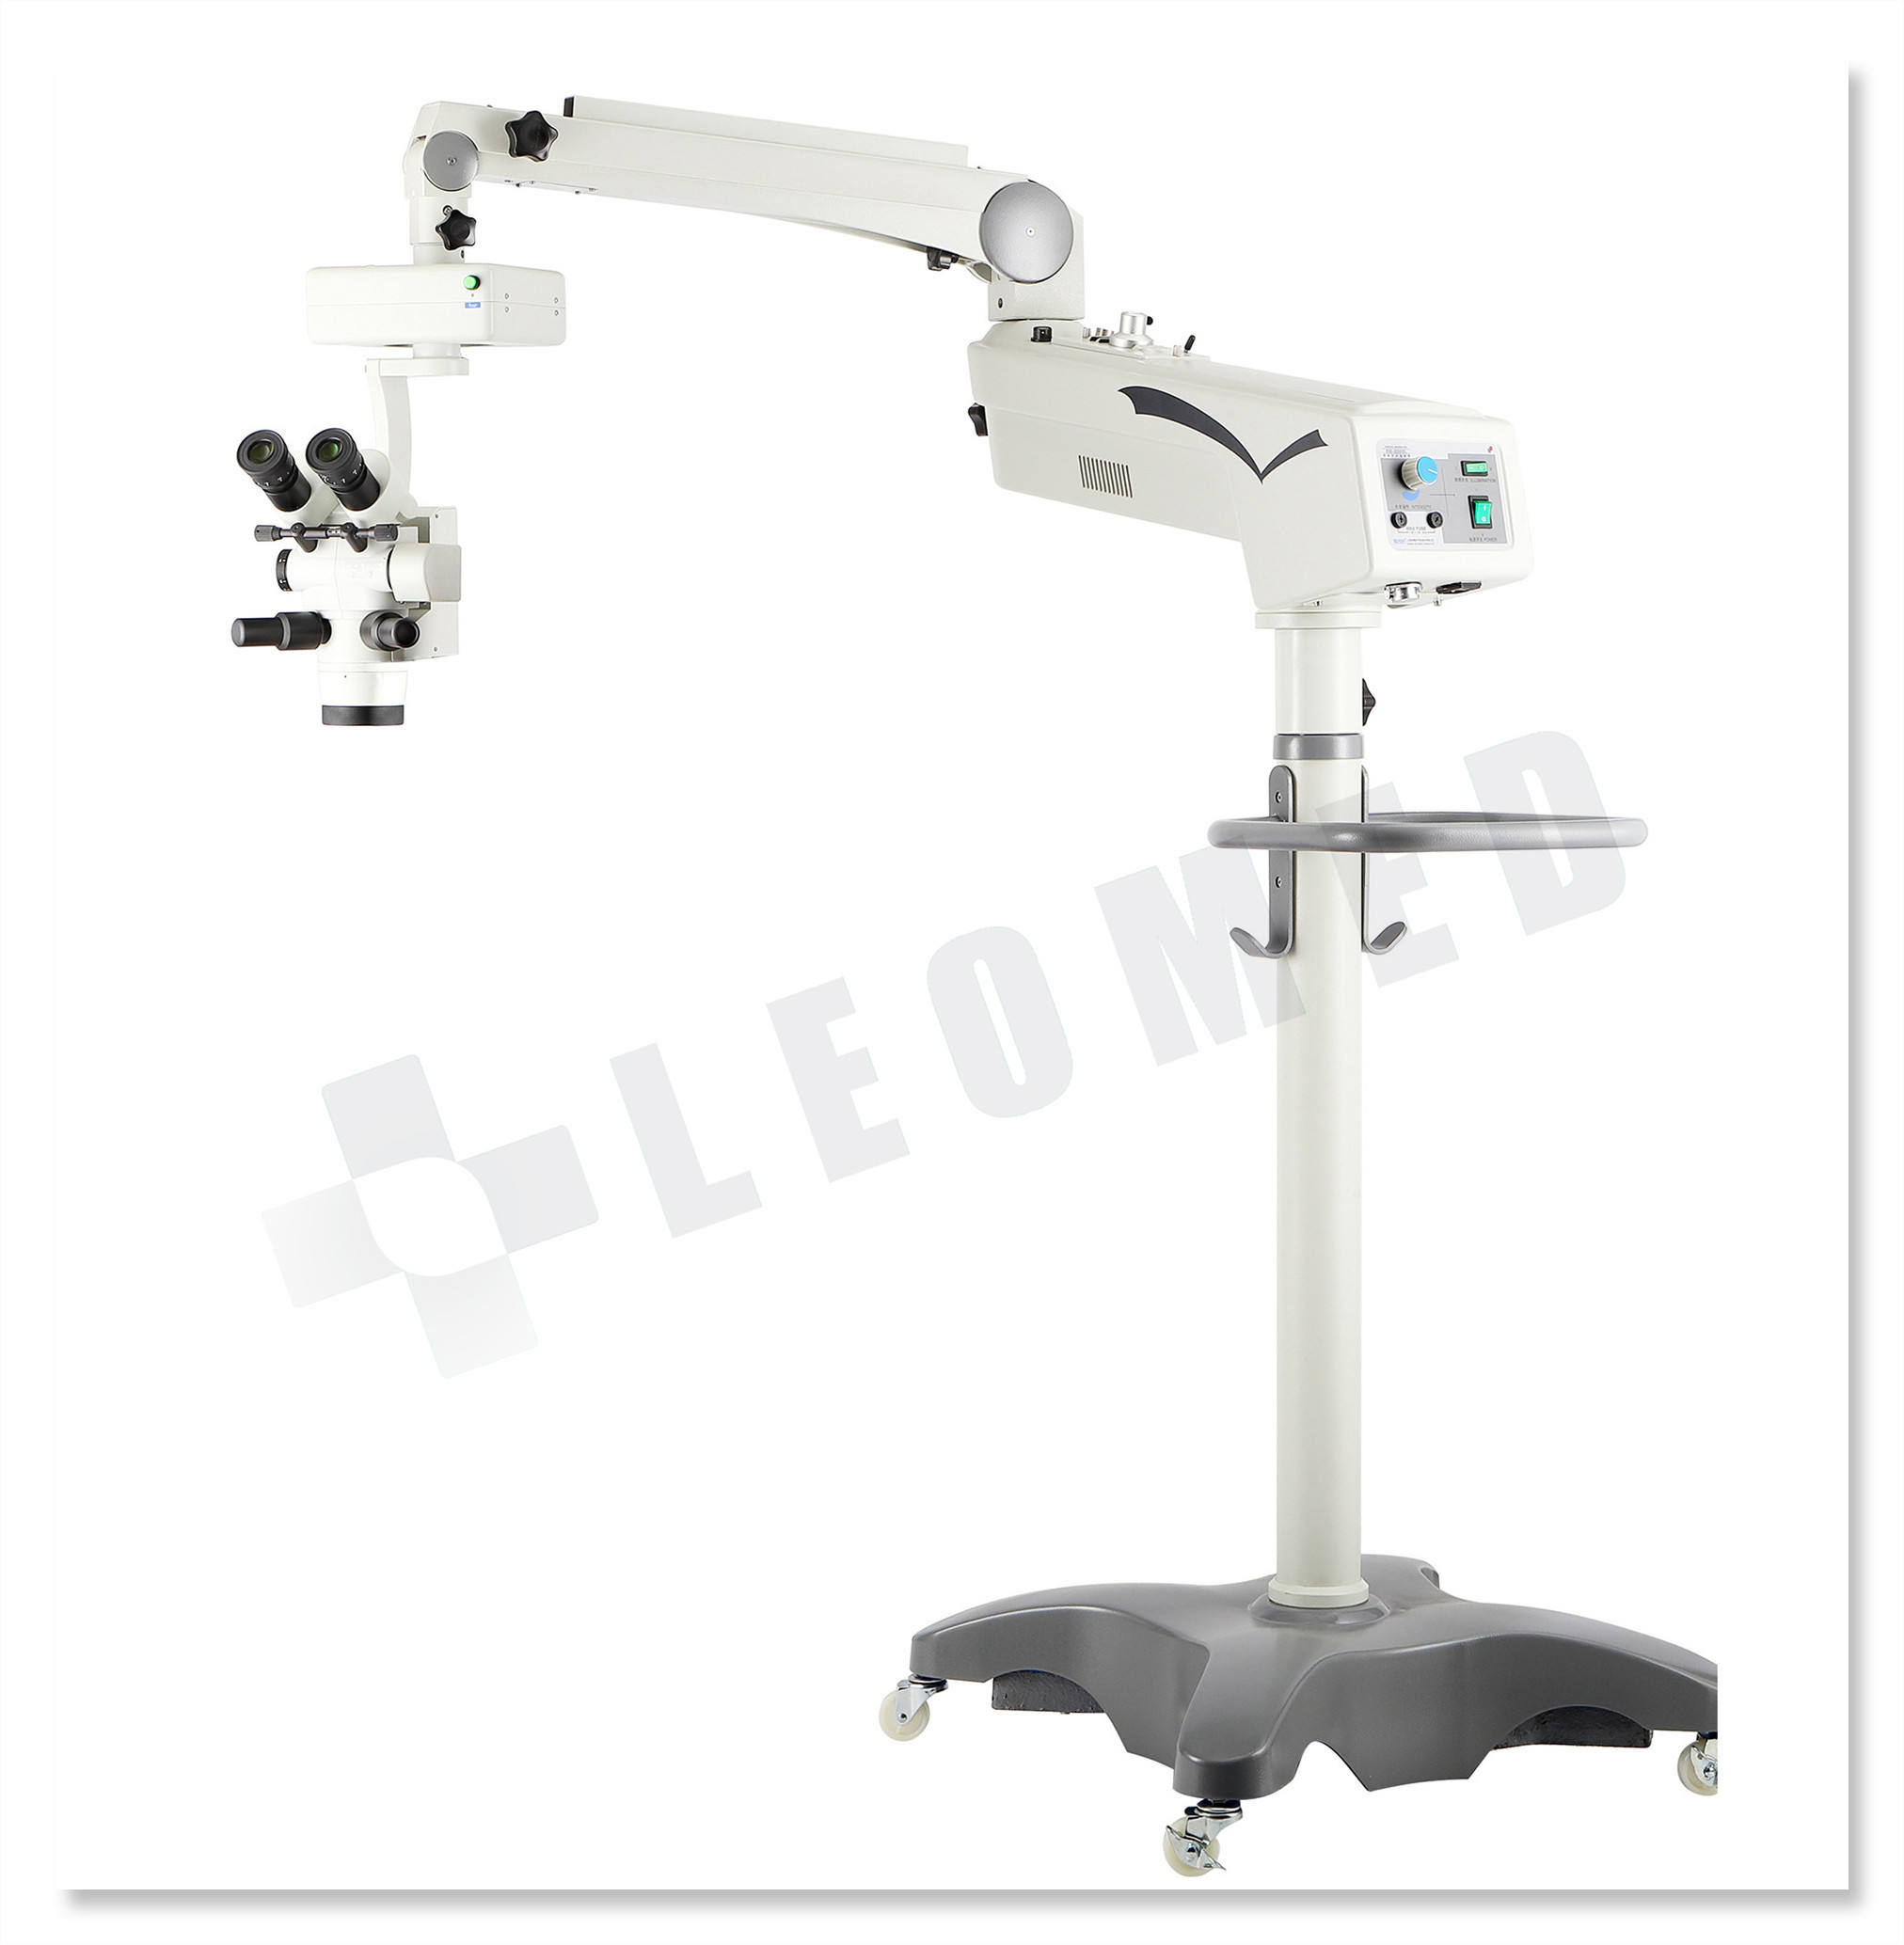 Hot Sales microscope binocular microscope for Ophthalmic surgery operation microscope